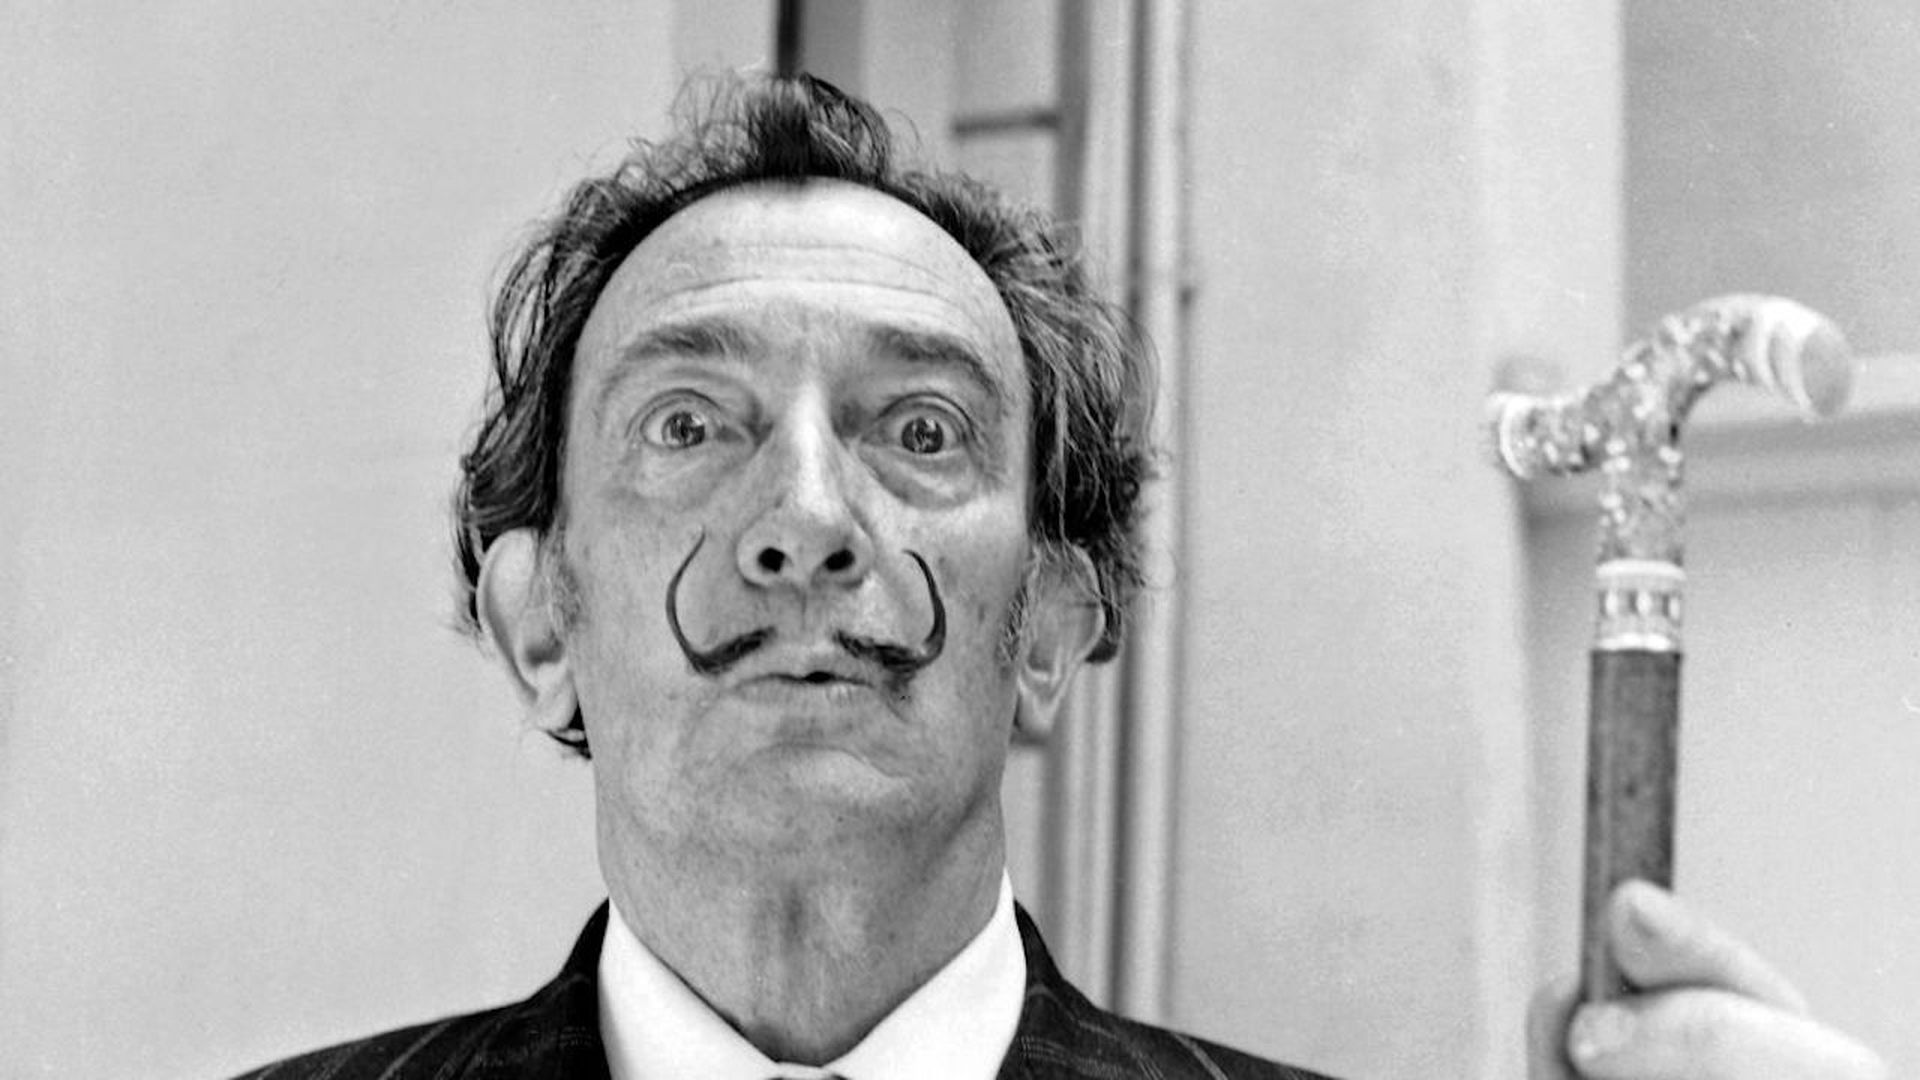 In a Florida museum, you can take a selfie with Salvador Dalí